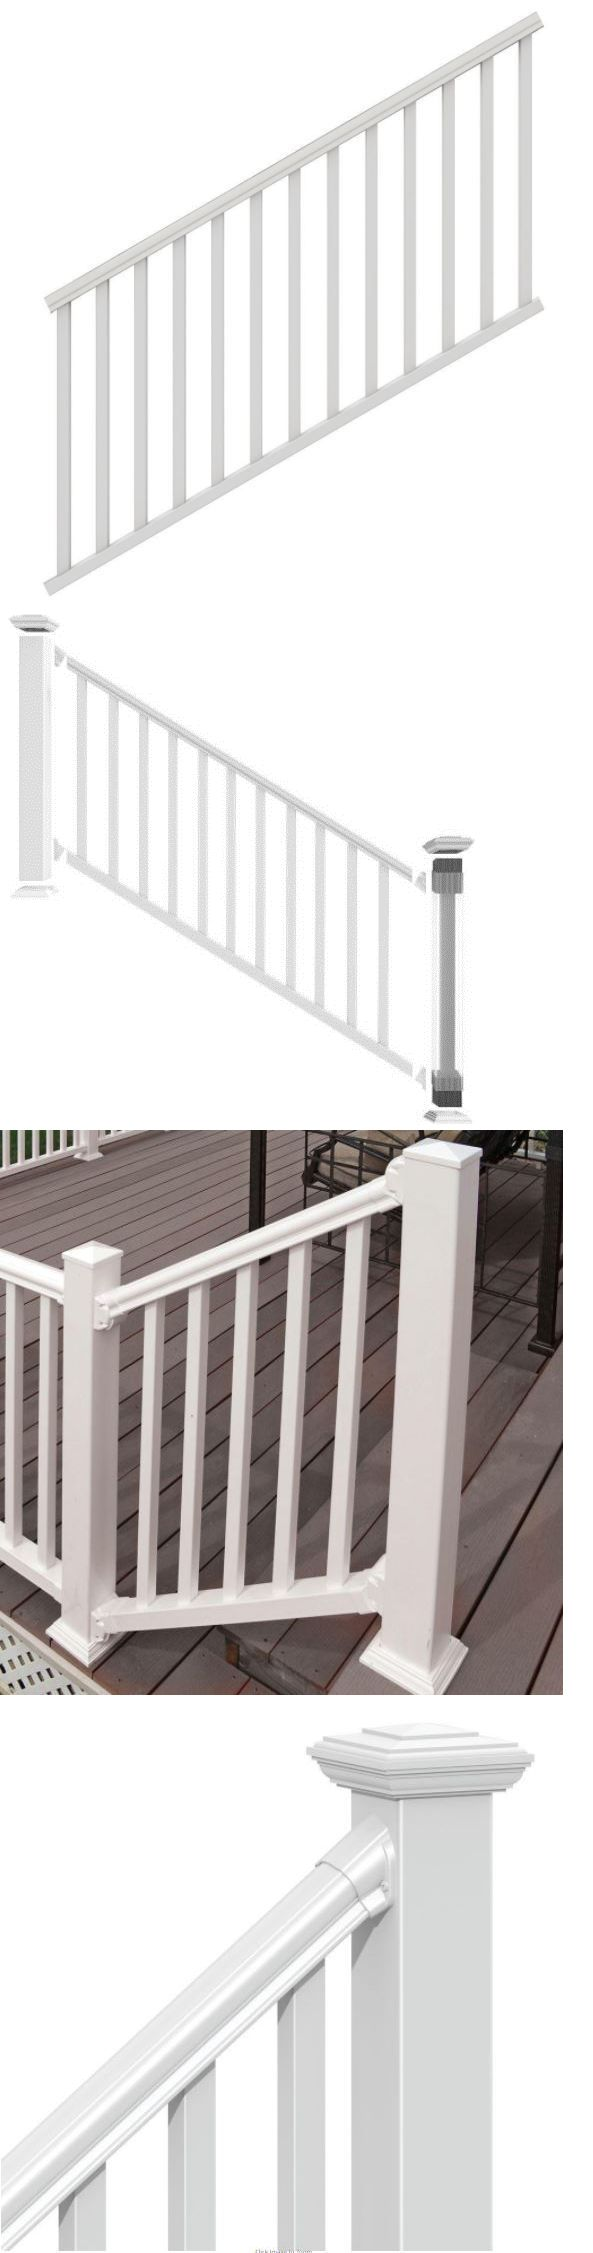 Best 20 Stair railing kits ideas on Pinterest Cable railing